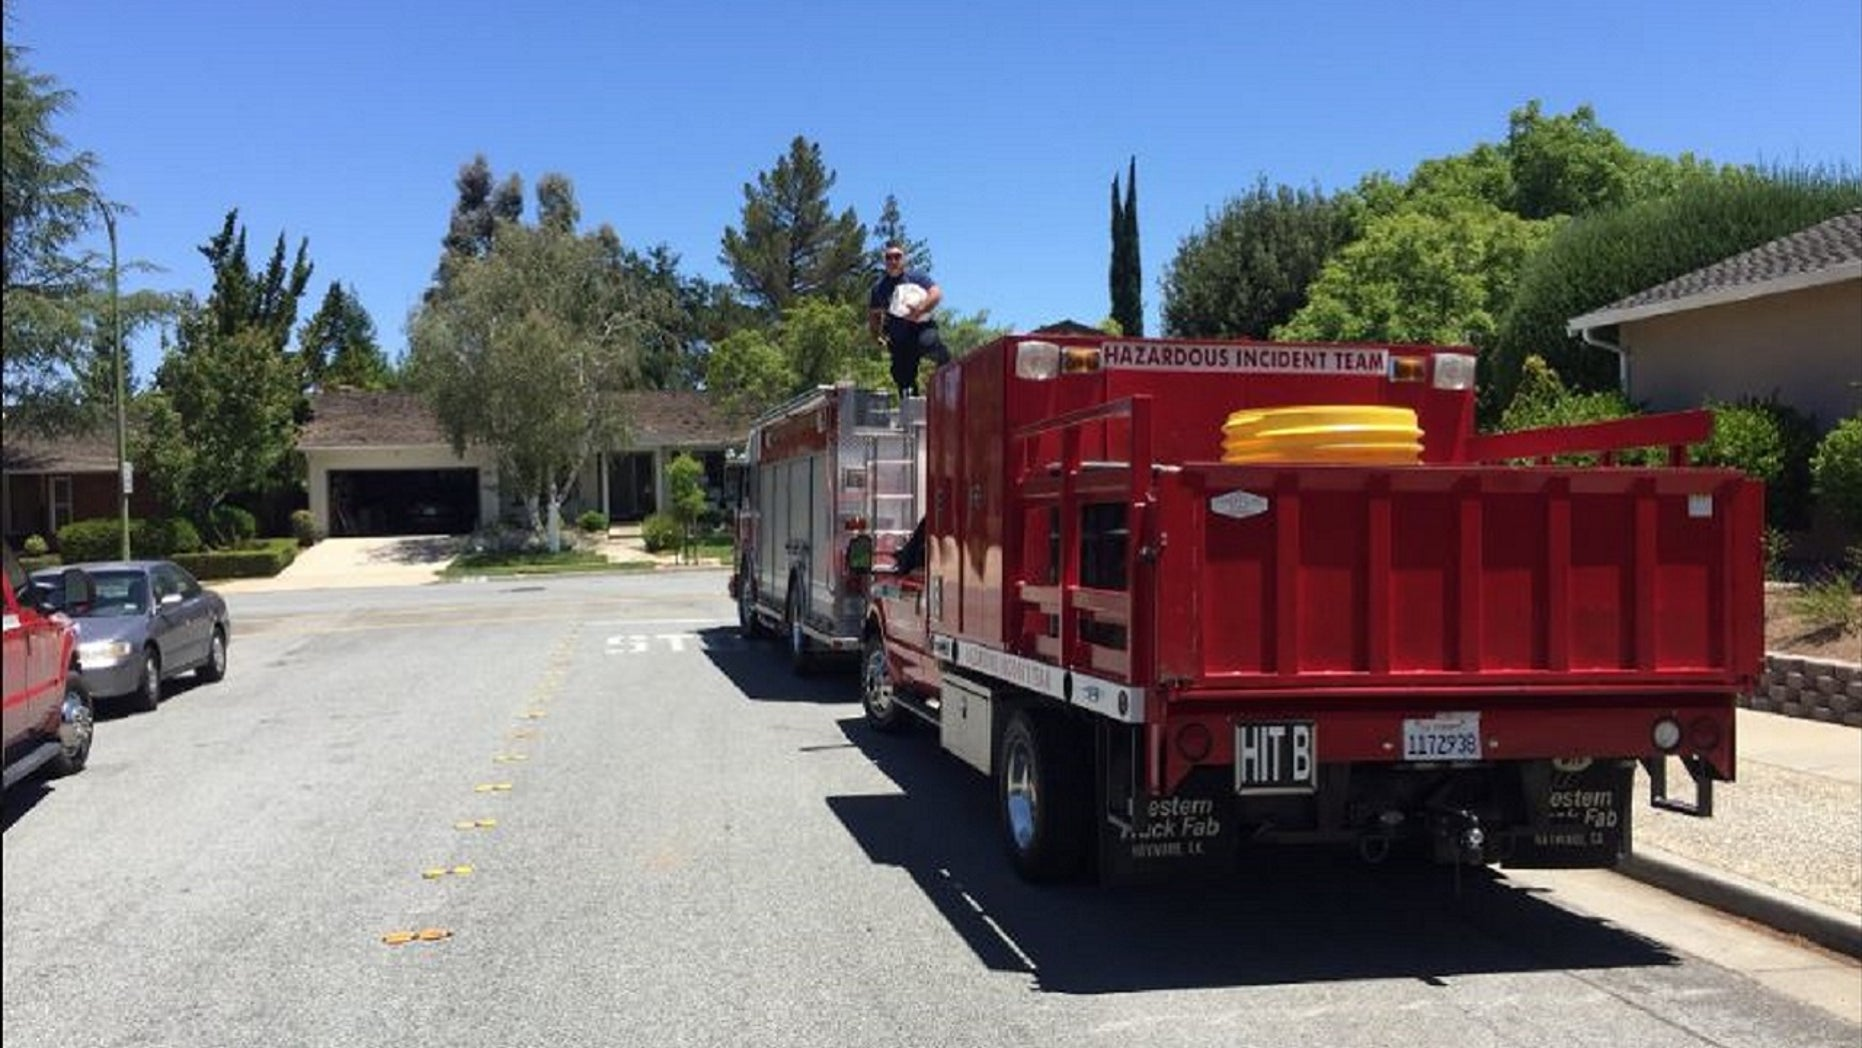 A dangerous mixture of pool chemicals hospitalized at least 35 people in northern California on Thursday.